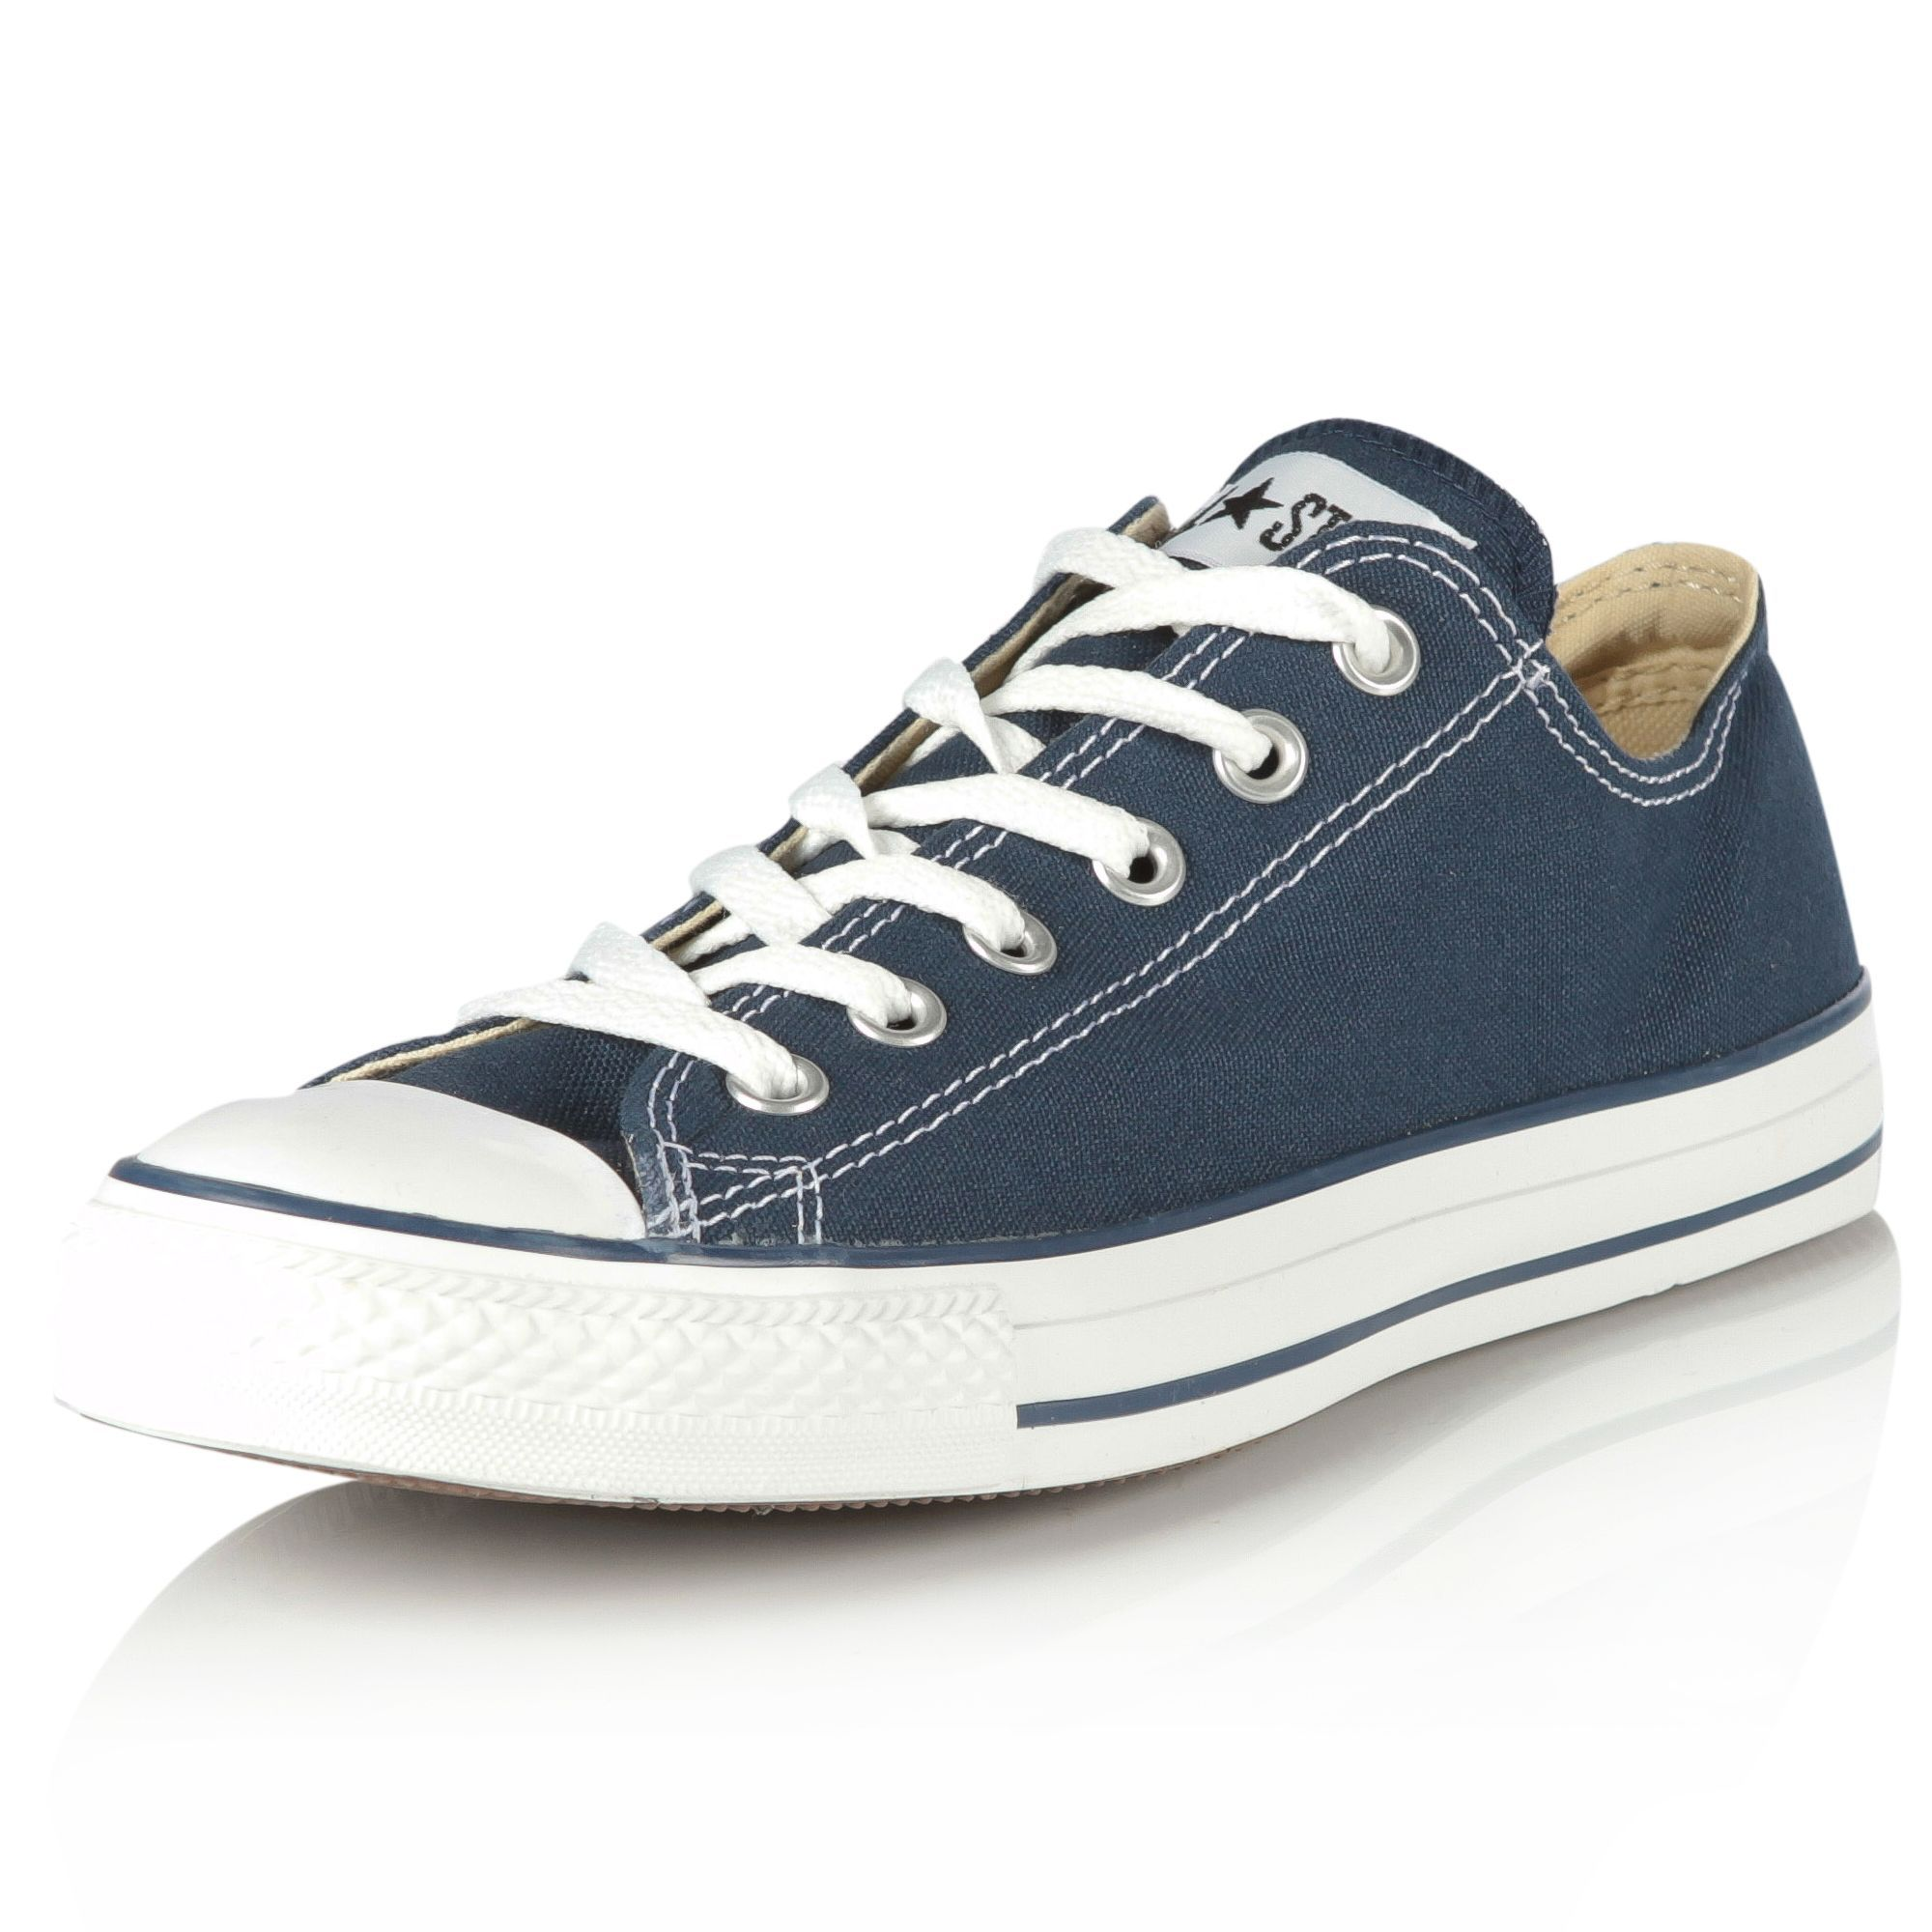 Converse Chuck taylor all star OX Chaussures Navy m9697